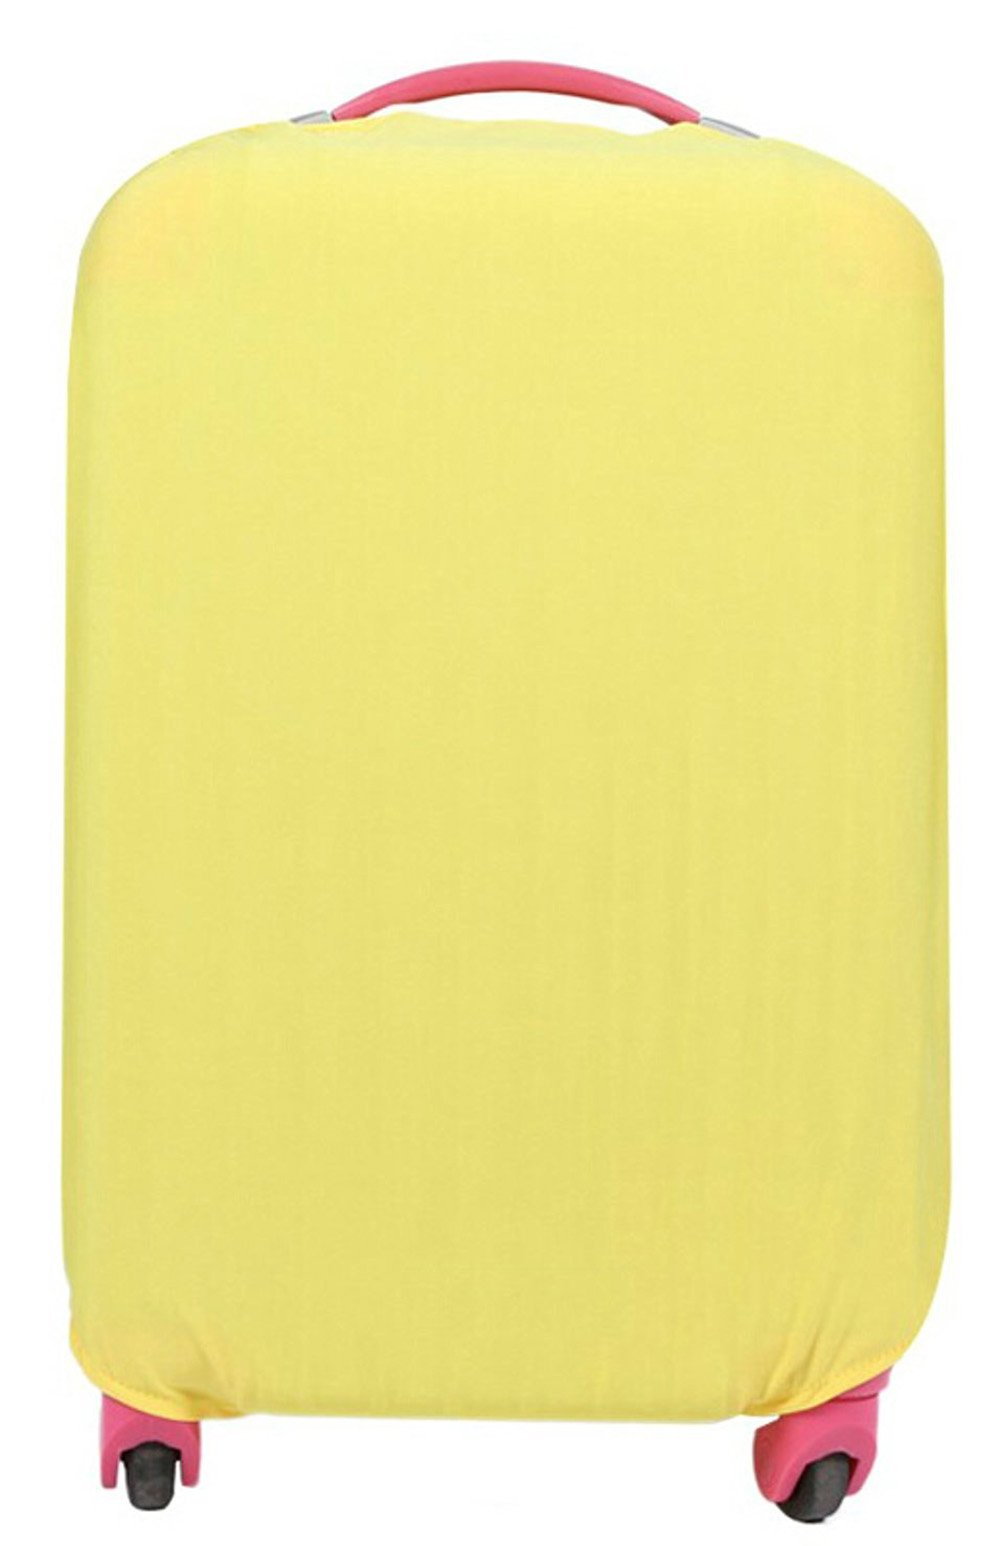 Fanyuan Spandex Travel Luggage Cover Fits (S (18-20 Inch Luggage), Yellow)